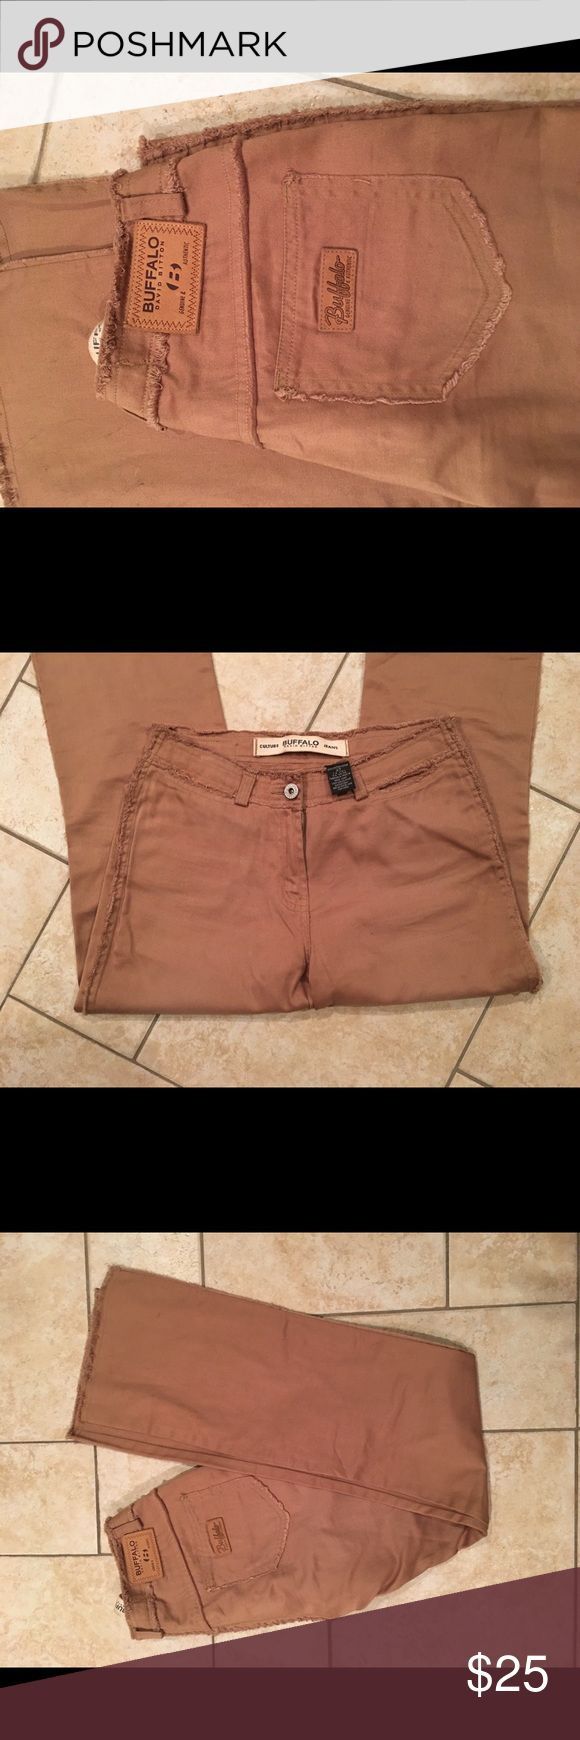 Buffalo size 27 boot cut tan jeans Buffalo size 27 boot cut tan jeans. Extremely soft material. Great for work or play. New never worn retail $189 Buffalo Jeans Boot Cut